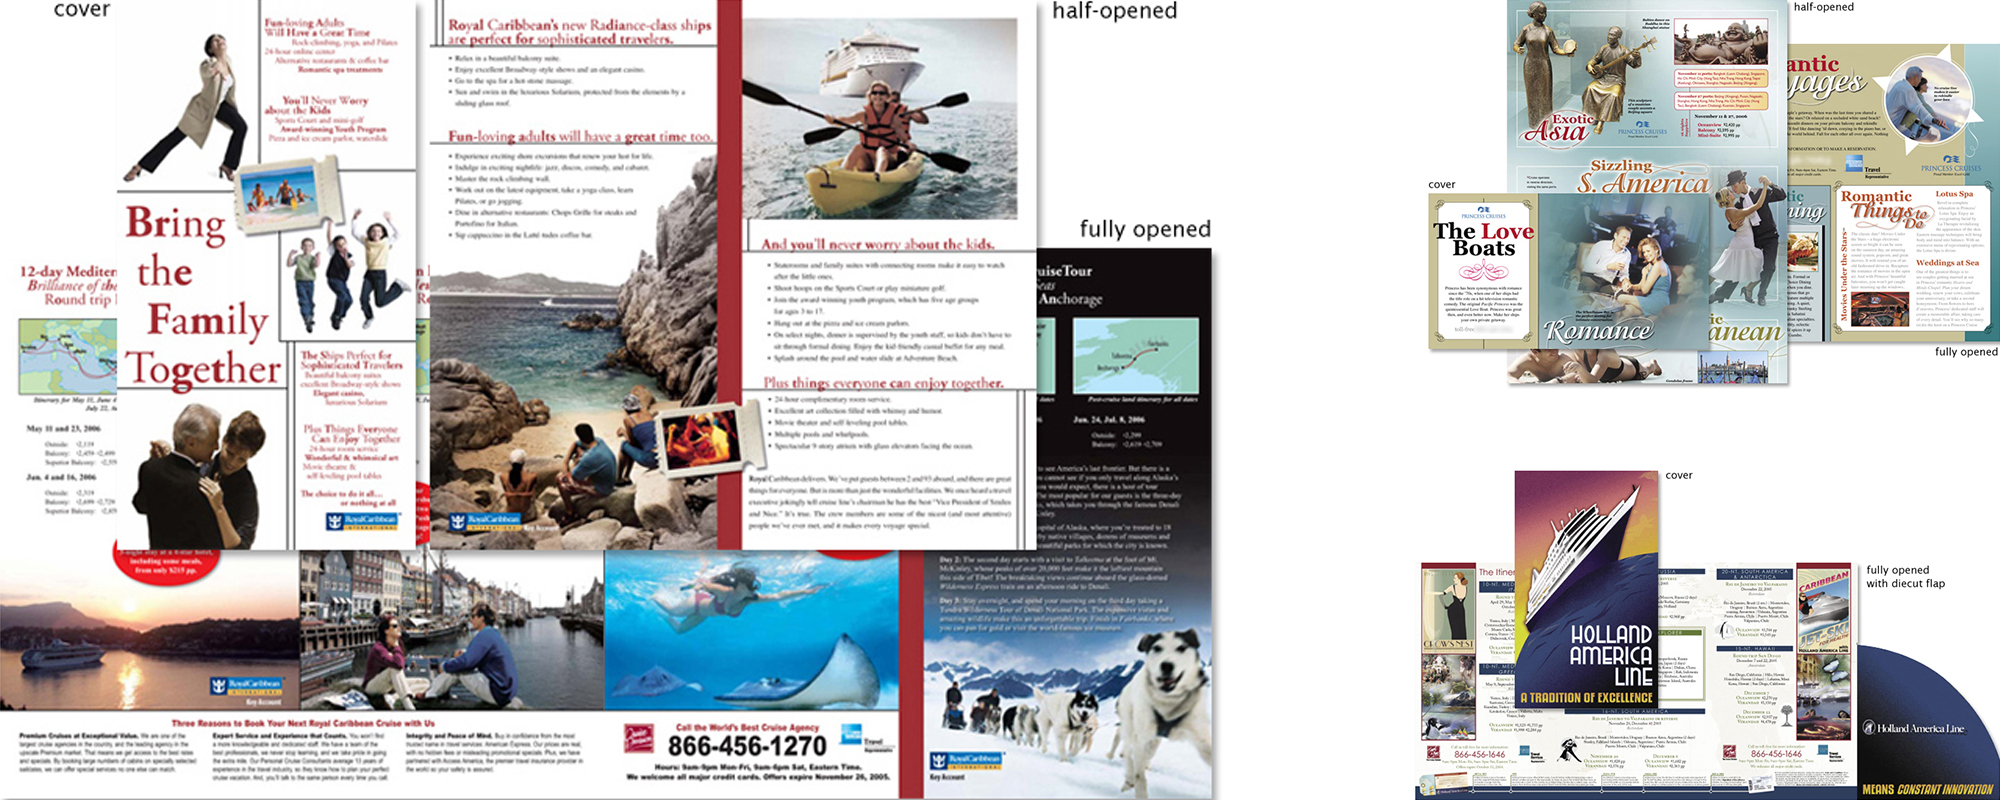 Direct Mail for Premium Cruises